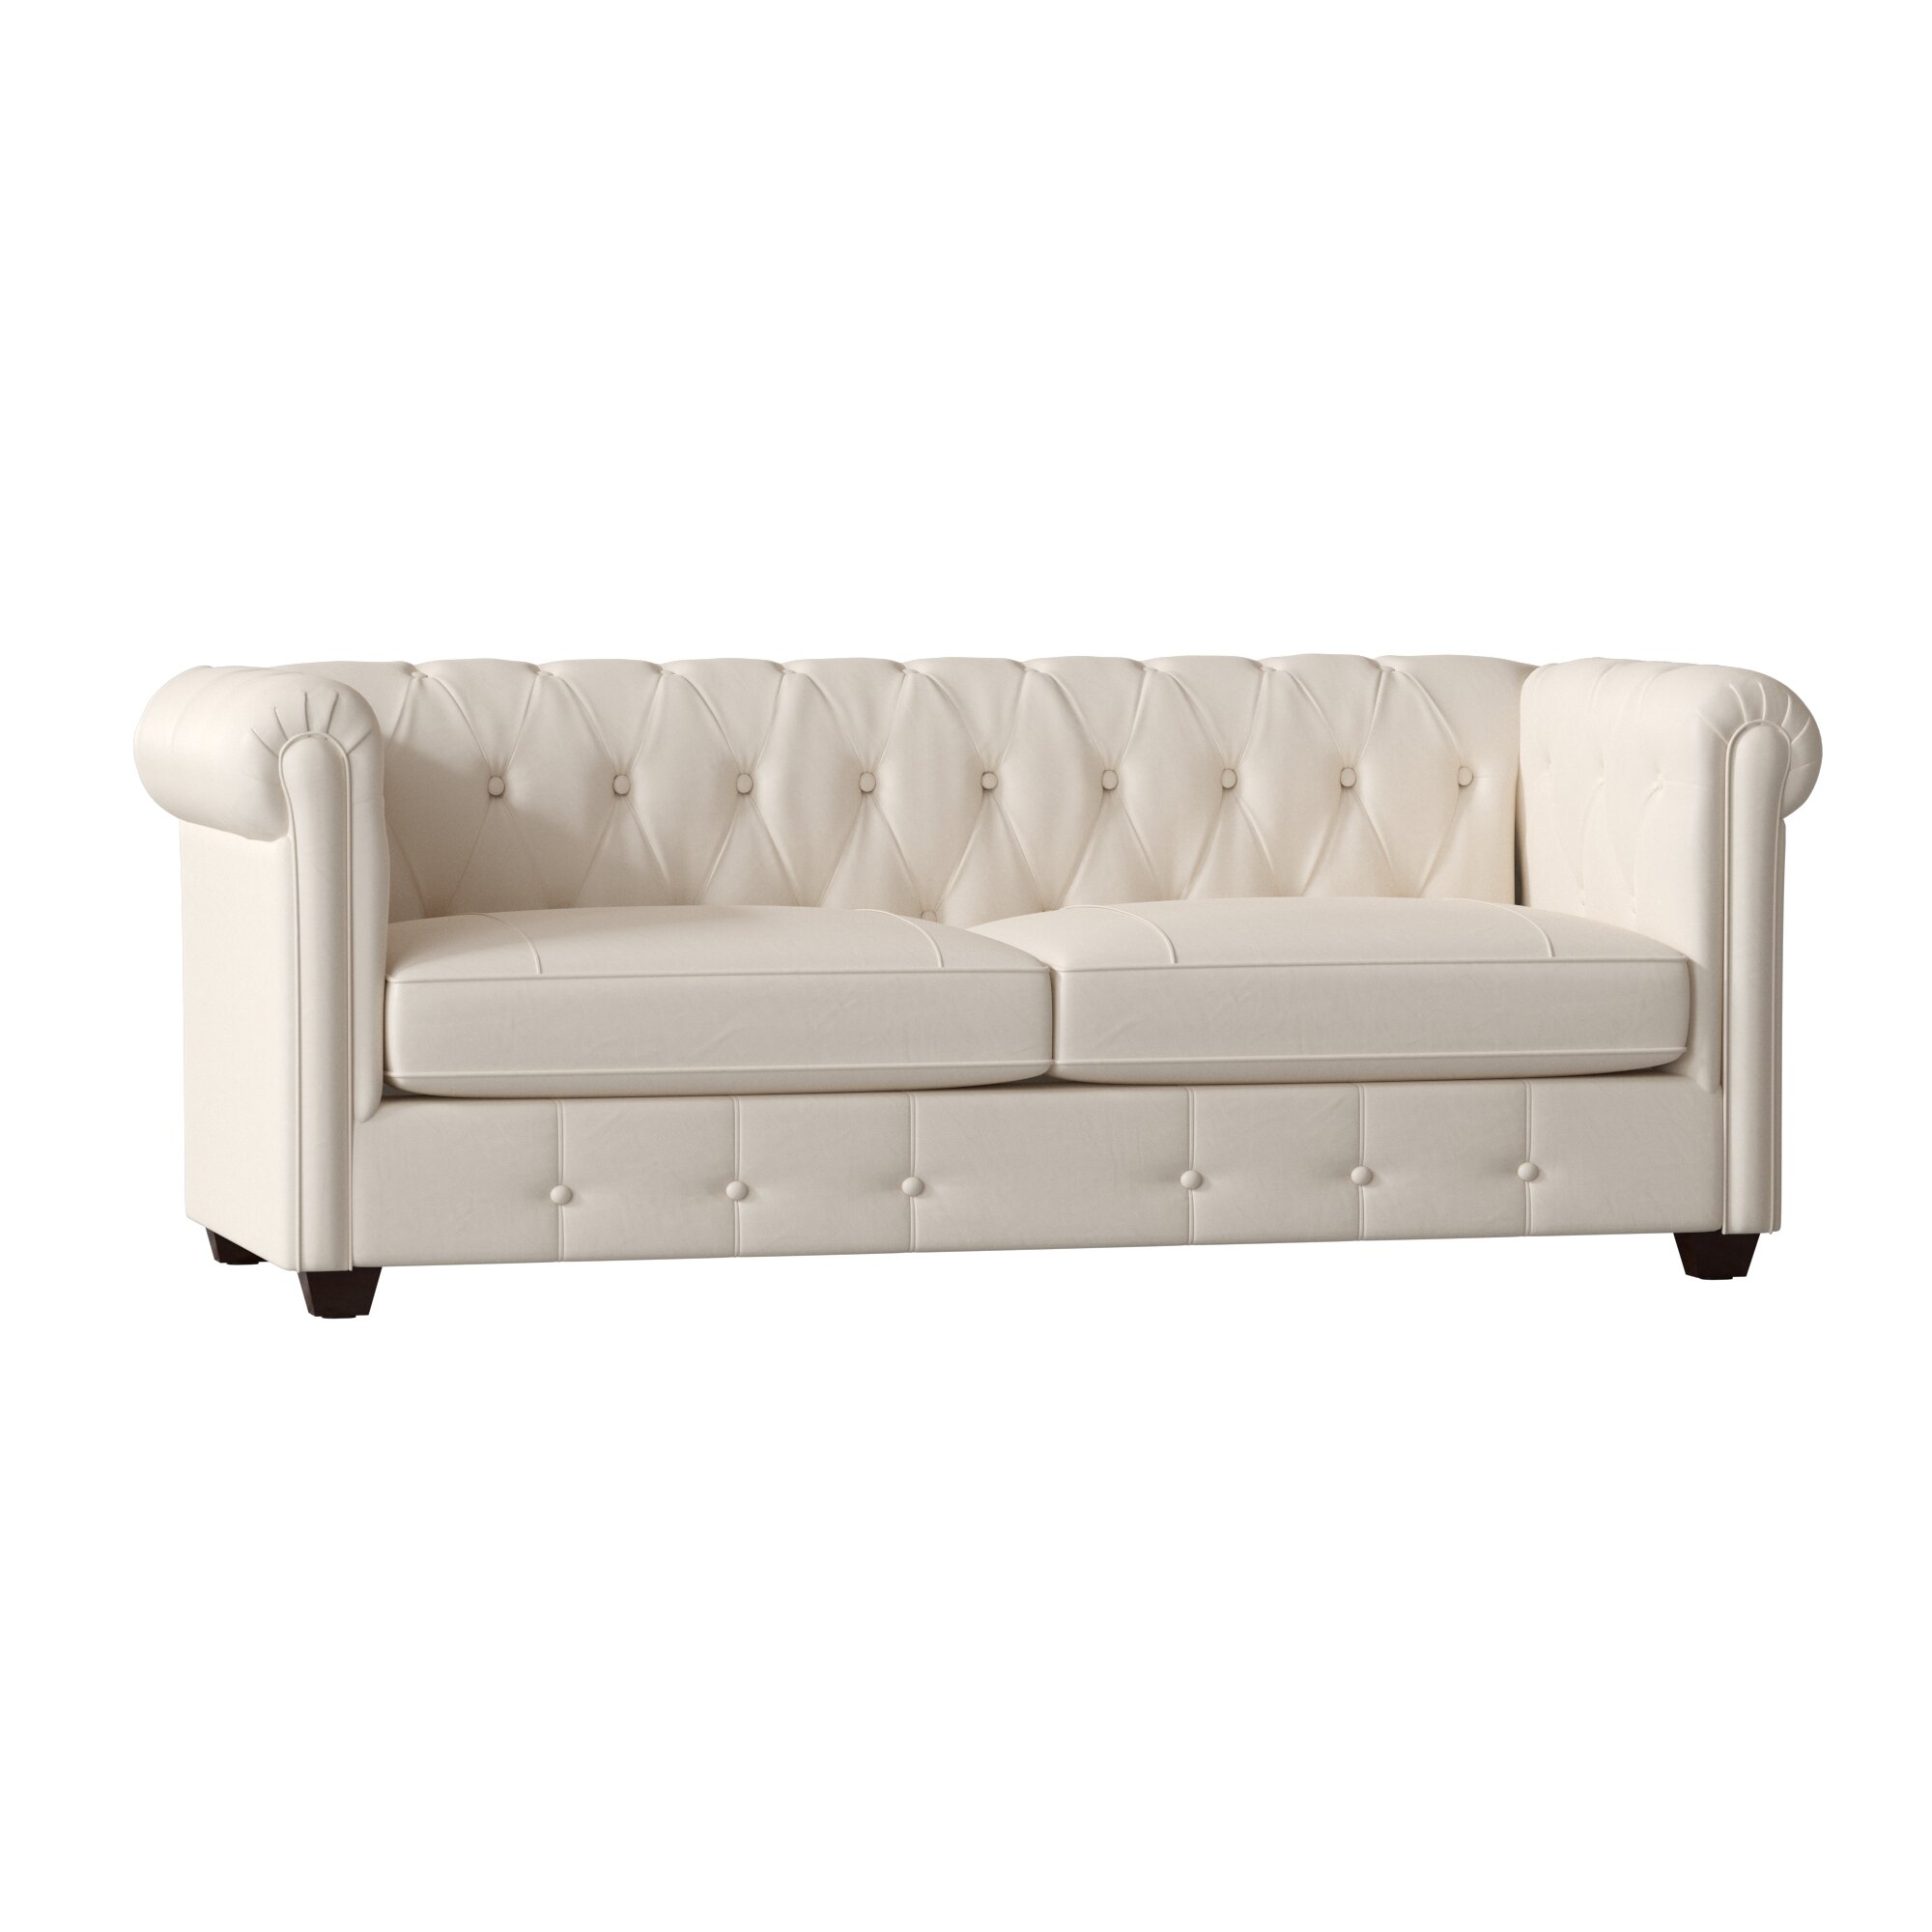 Birch Lane Heritage Hawthorn Leather Chesterfield Sofa Reviews